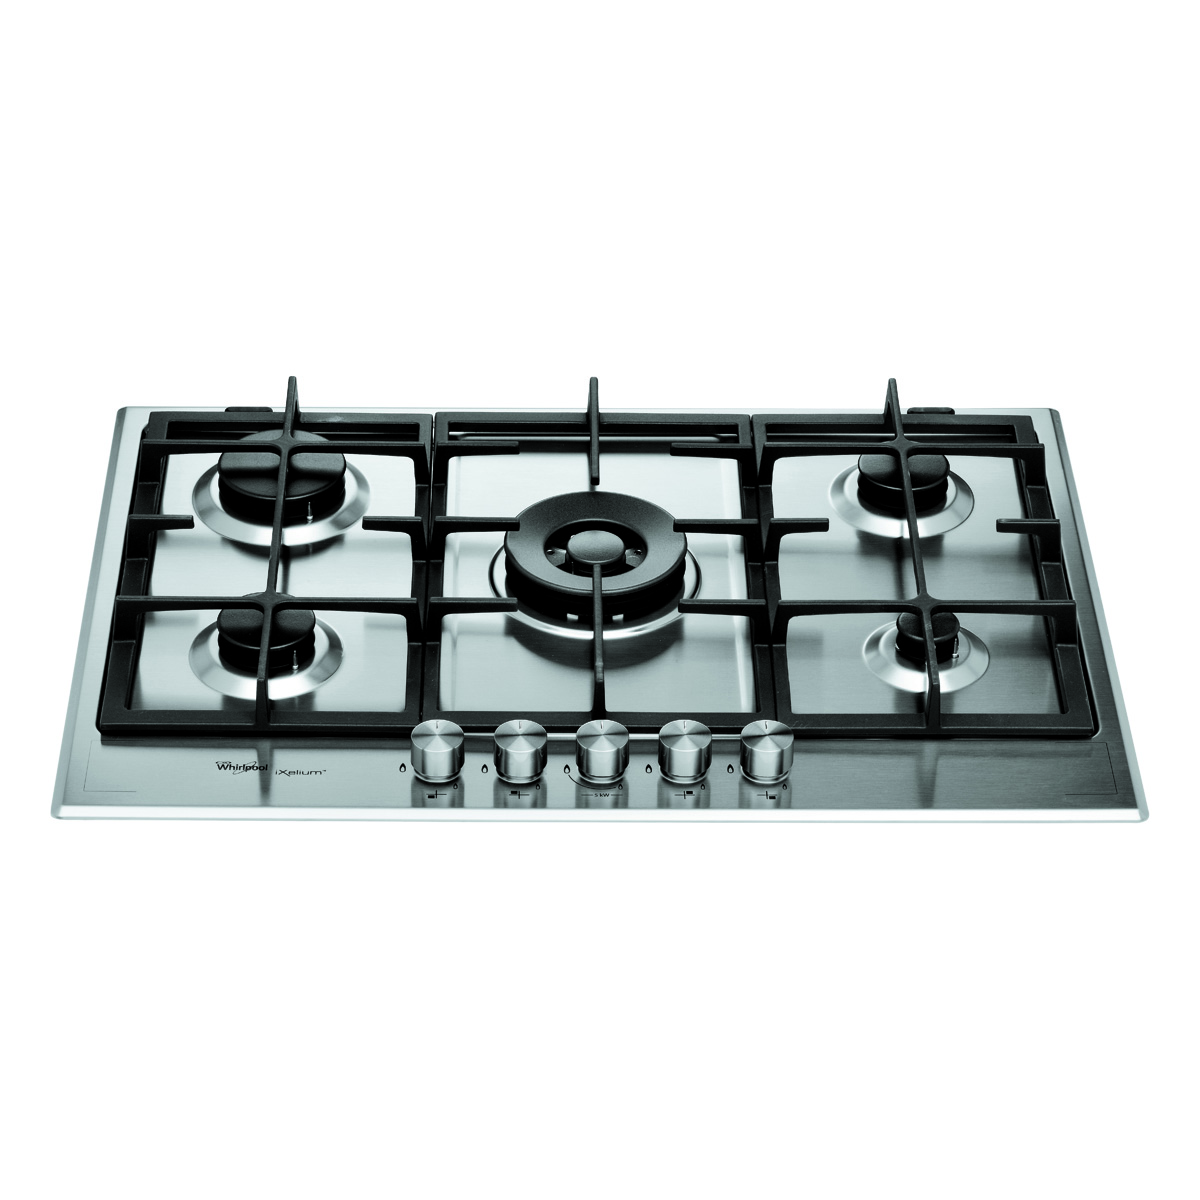 Kitchen Hob Whirlpool Norway ~ Whirlpool gmf ixl fusion built in gas hob stainless